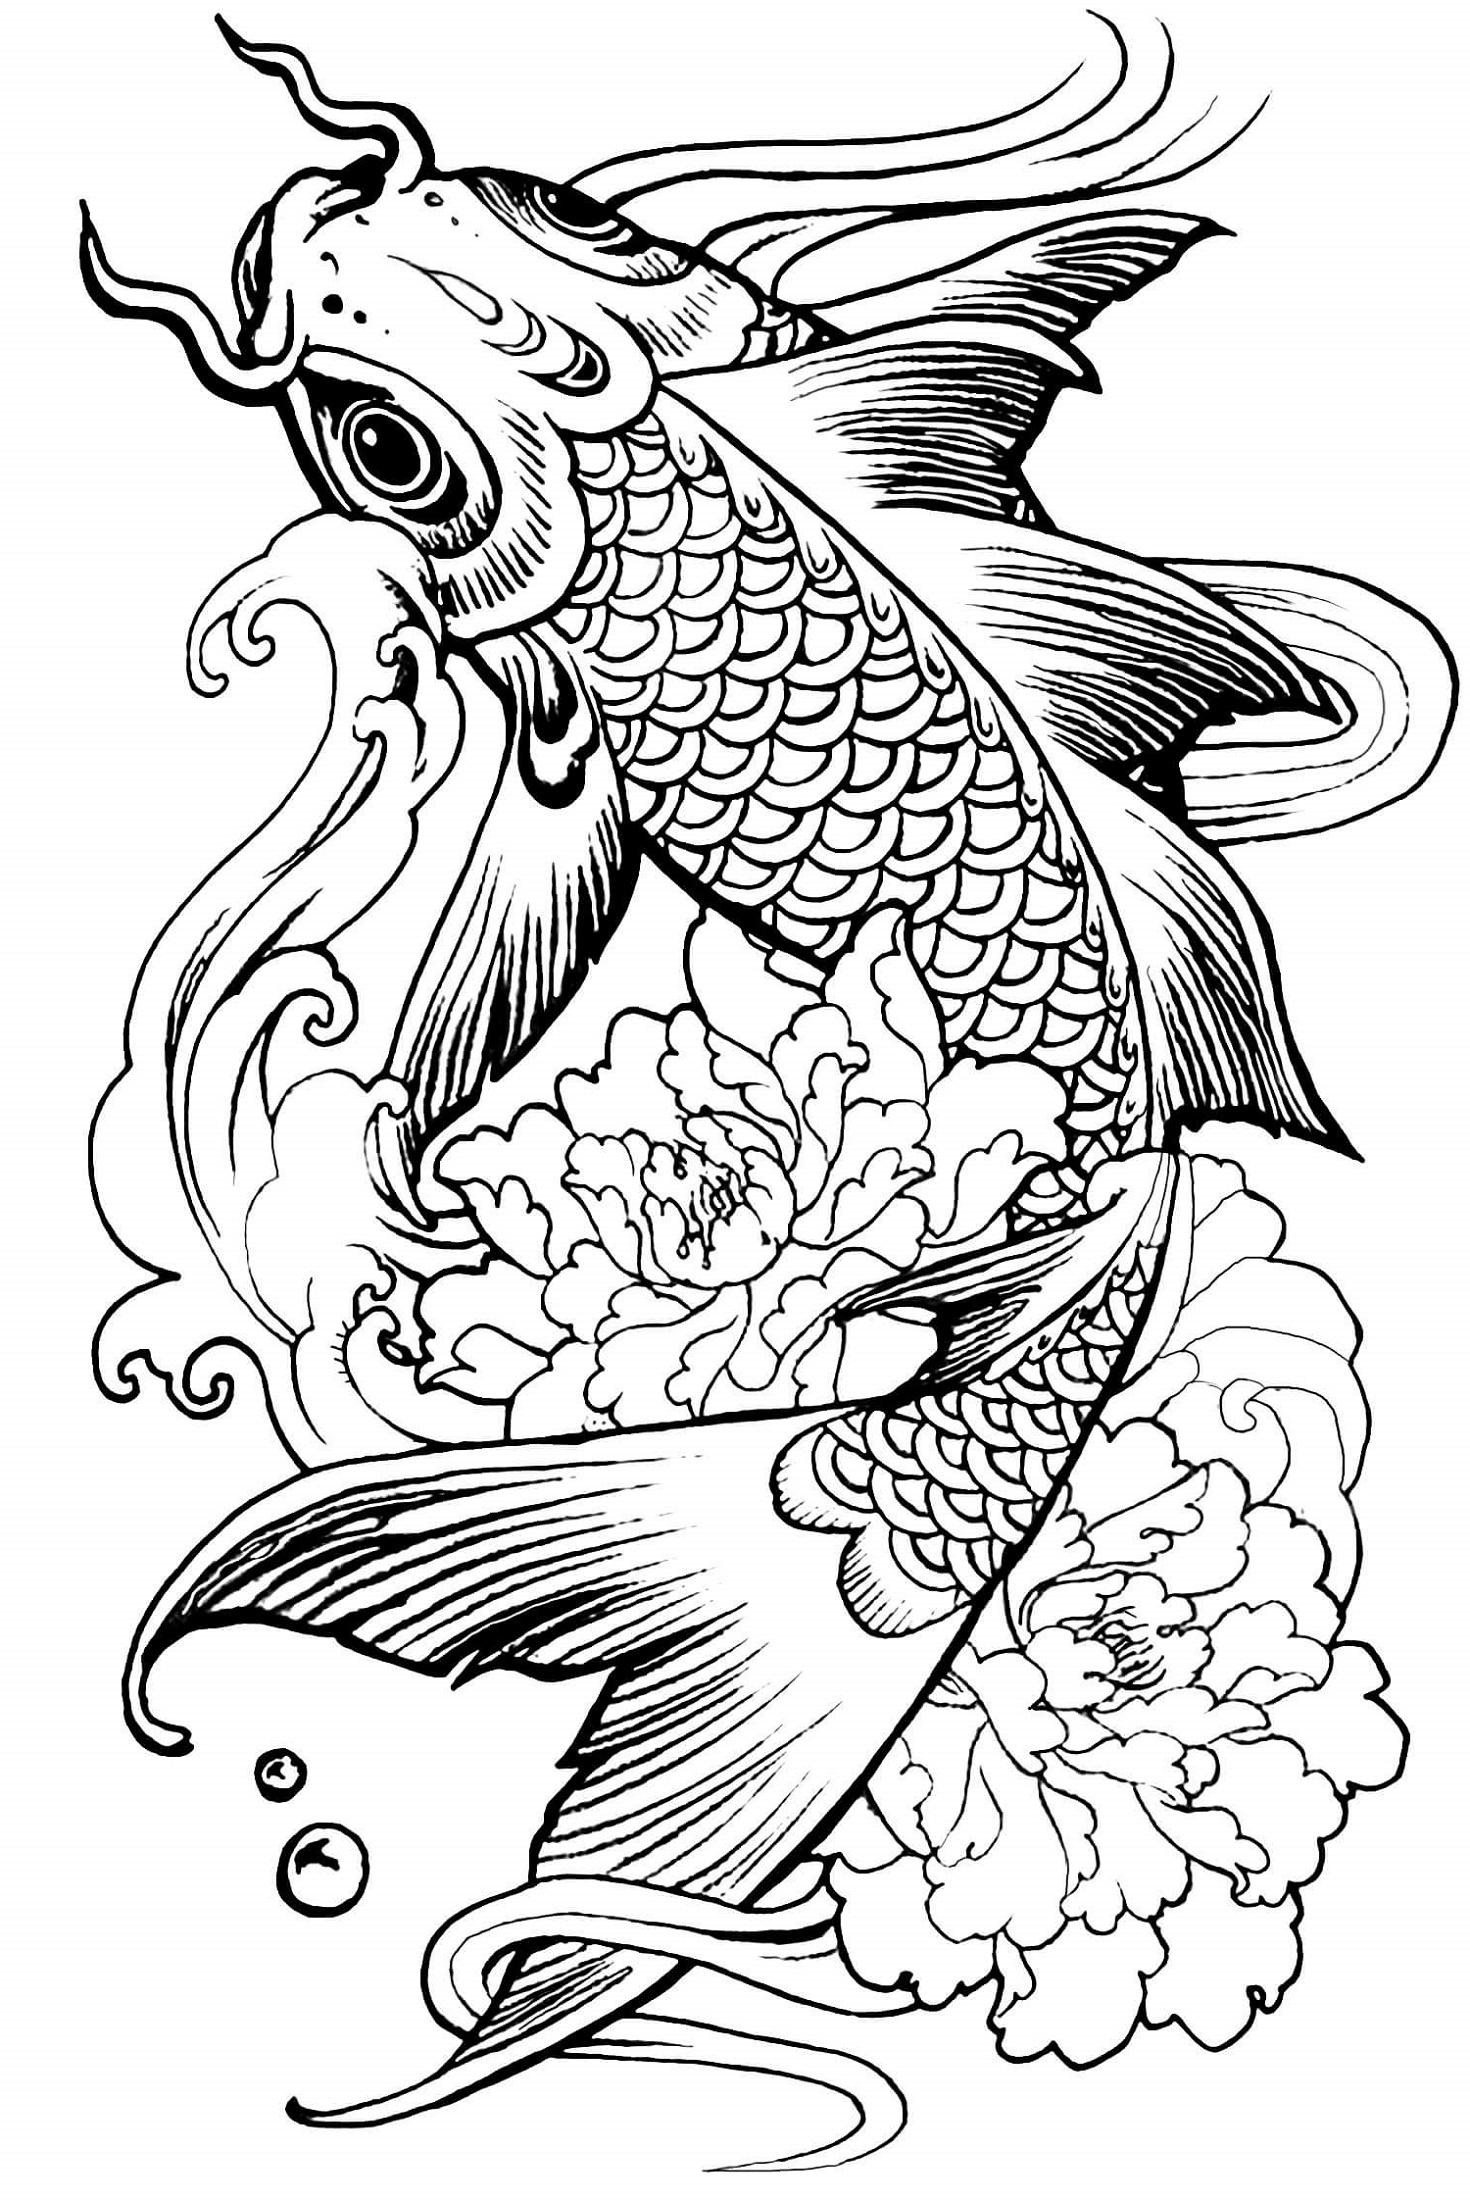 Animal Coloring Books For Adults Fish